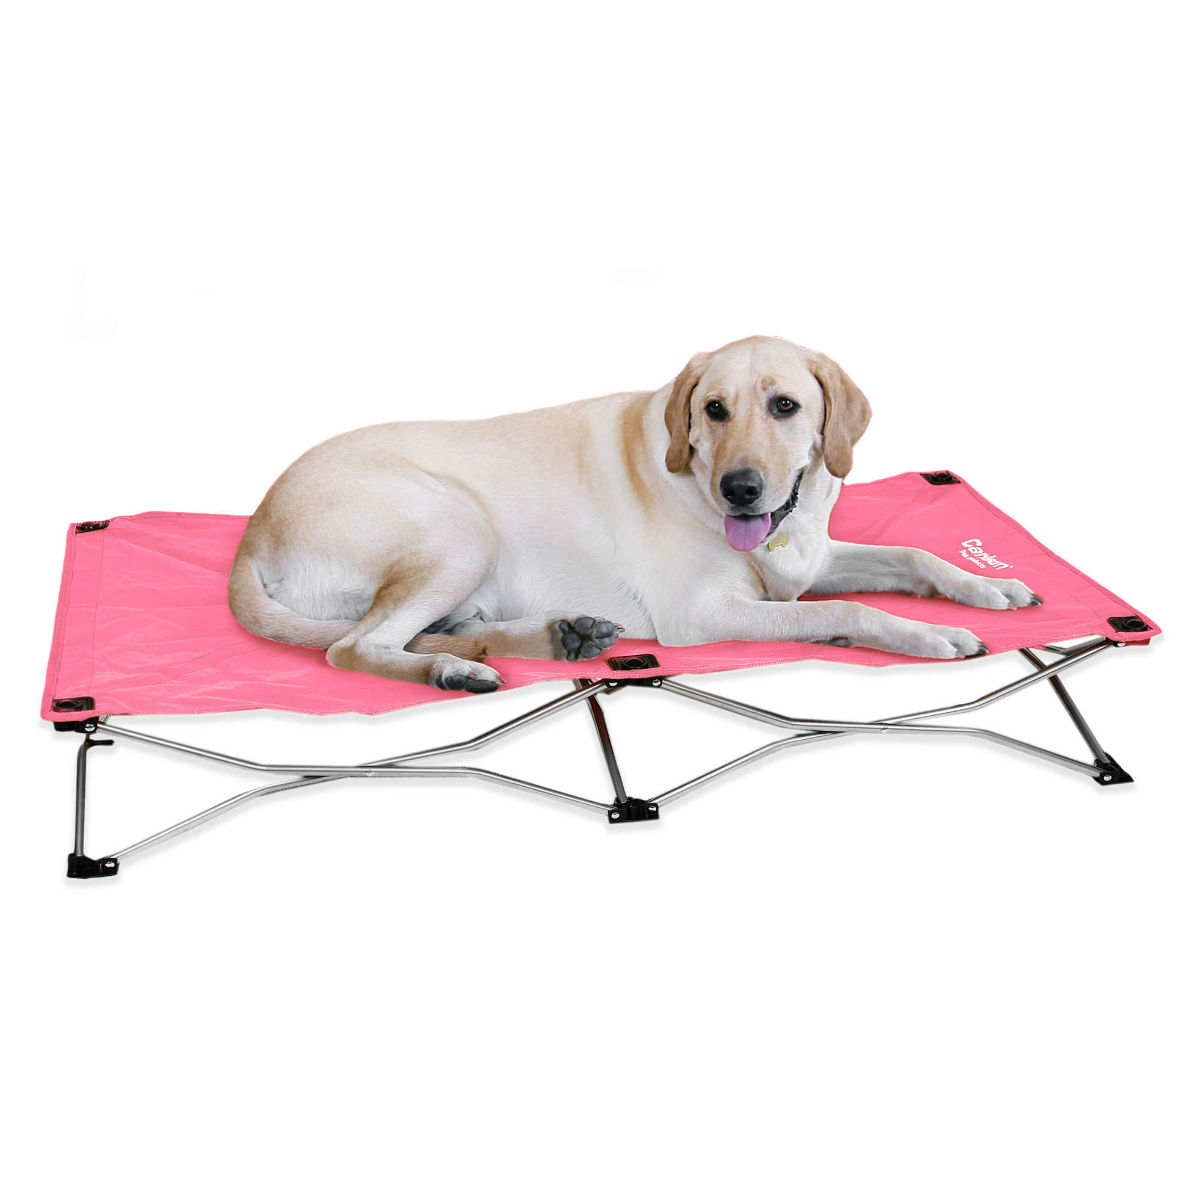 Travel Dog Bed >> Carlson Portable Pup Travel Dog Bed Pink